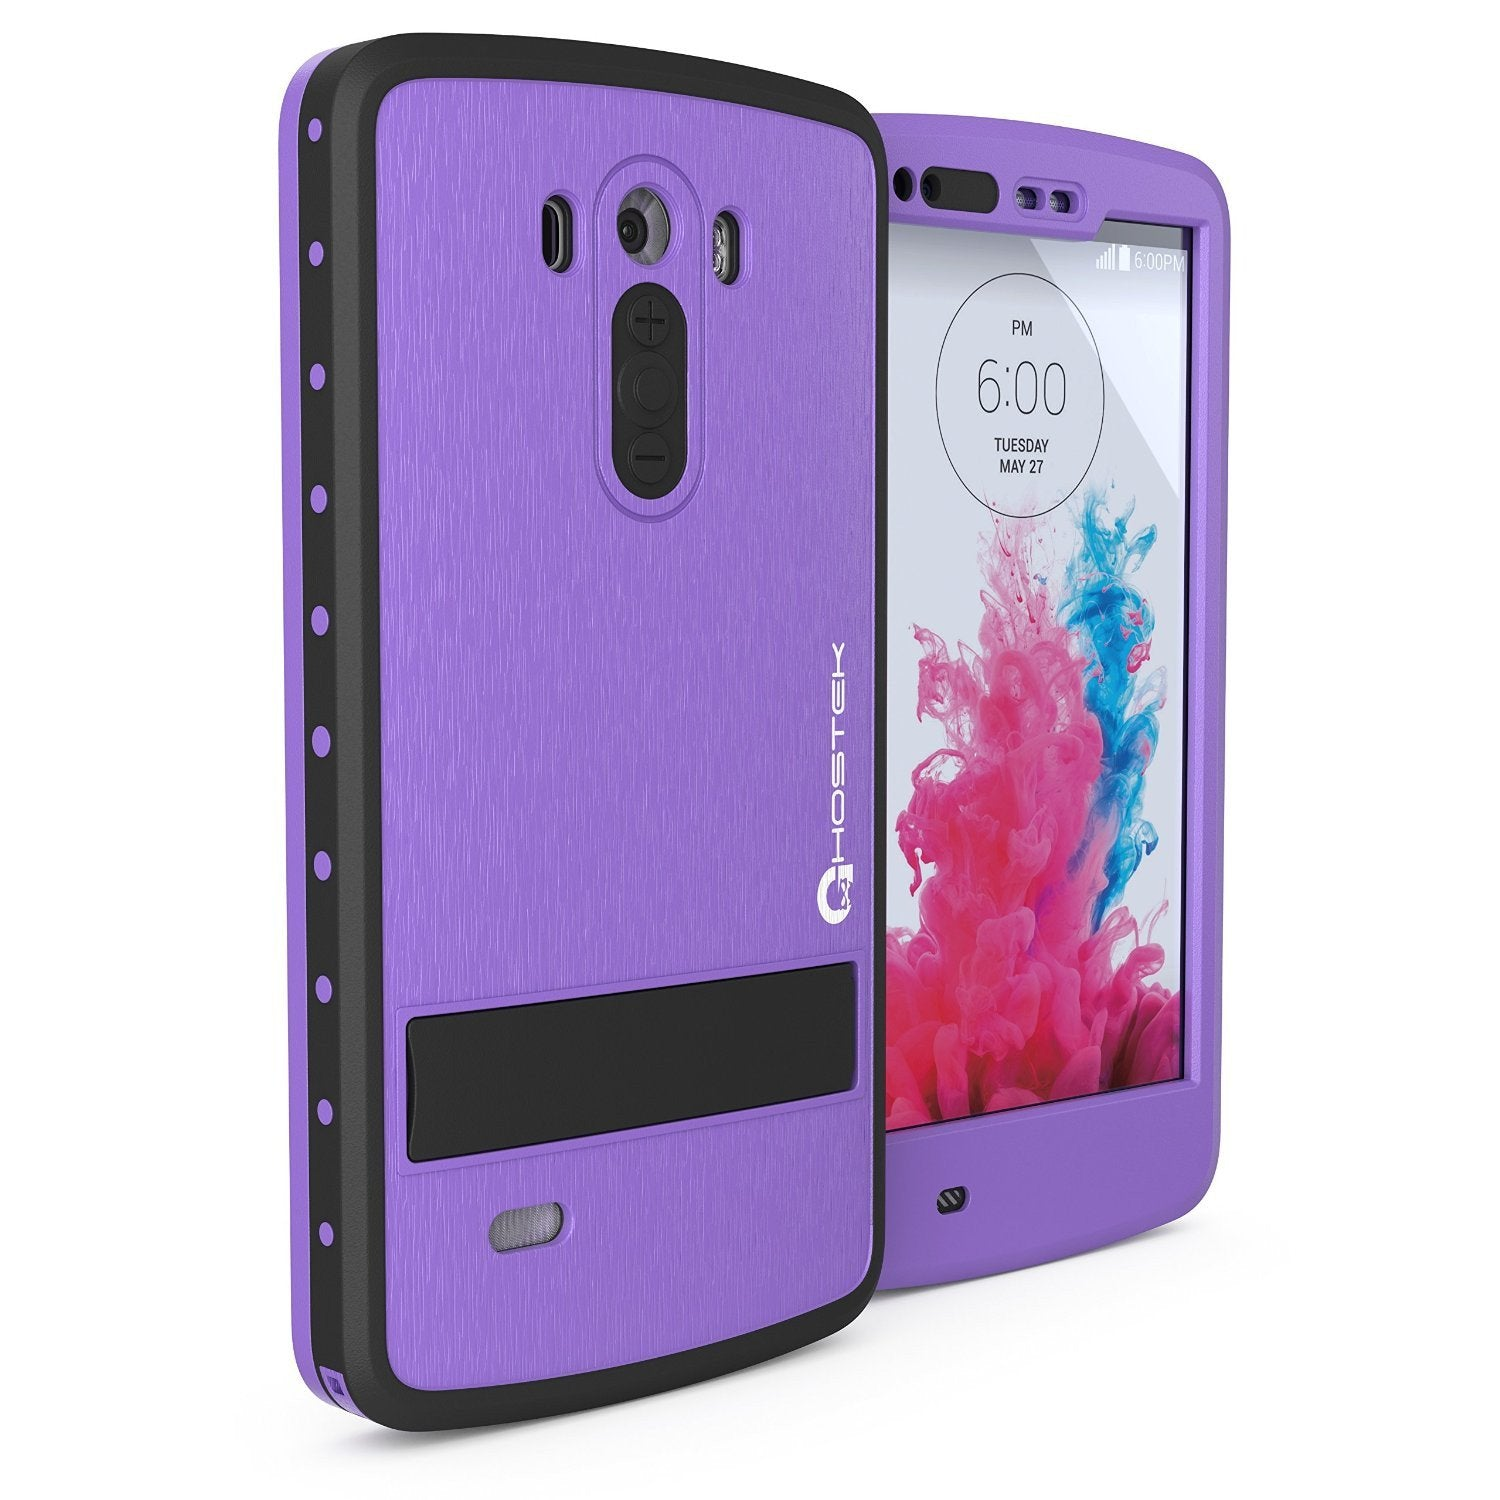 LG G3 Waterproof Case, Ghostek Atomic PURPLE W/ Attached Screen Protector  Slim Fitted  LG G3